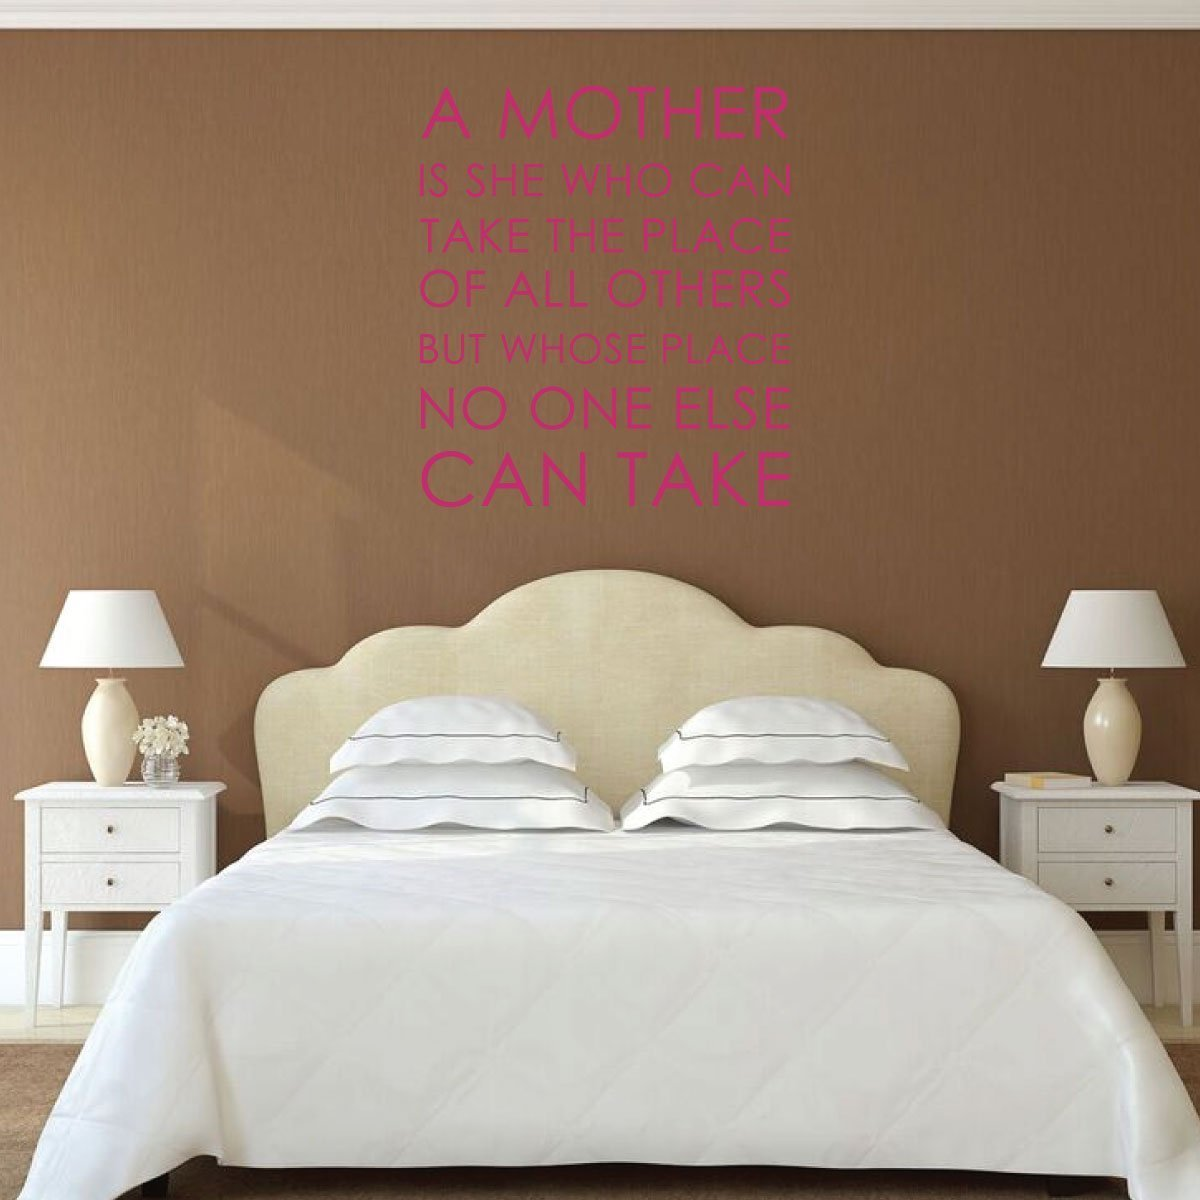 Mother's Day Gifts Vinyl Wall Art Decal Sticker - Quotes About Mothers